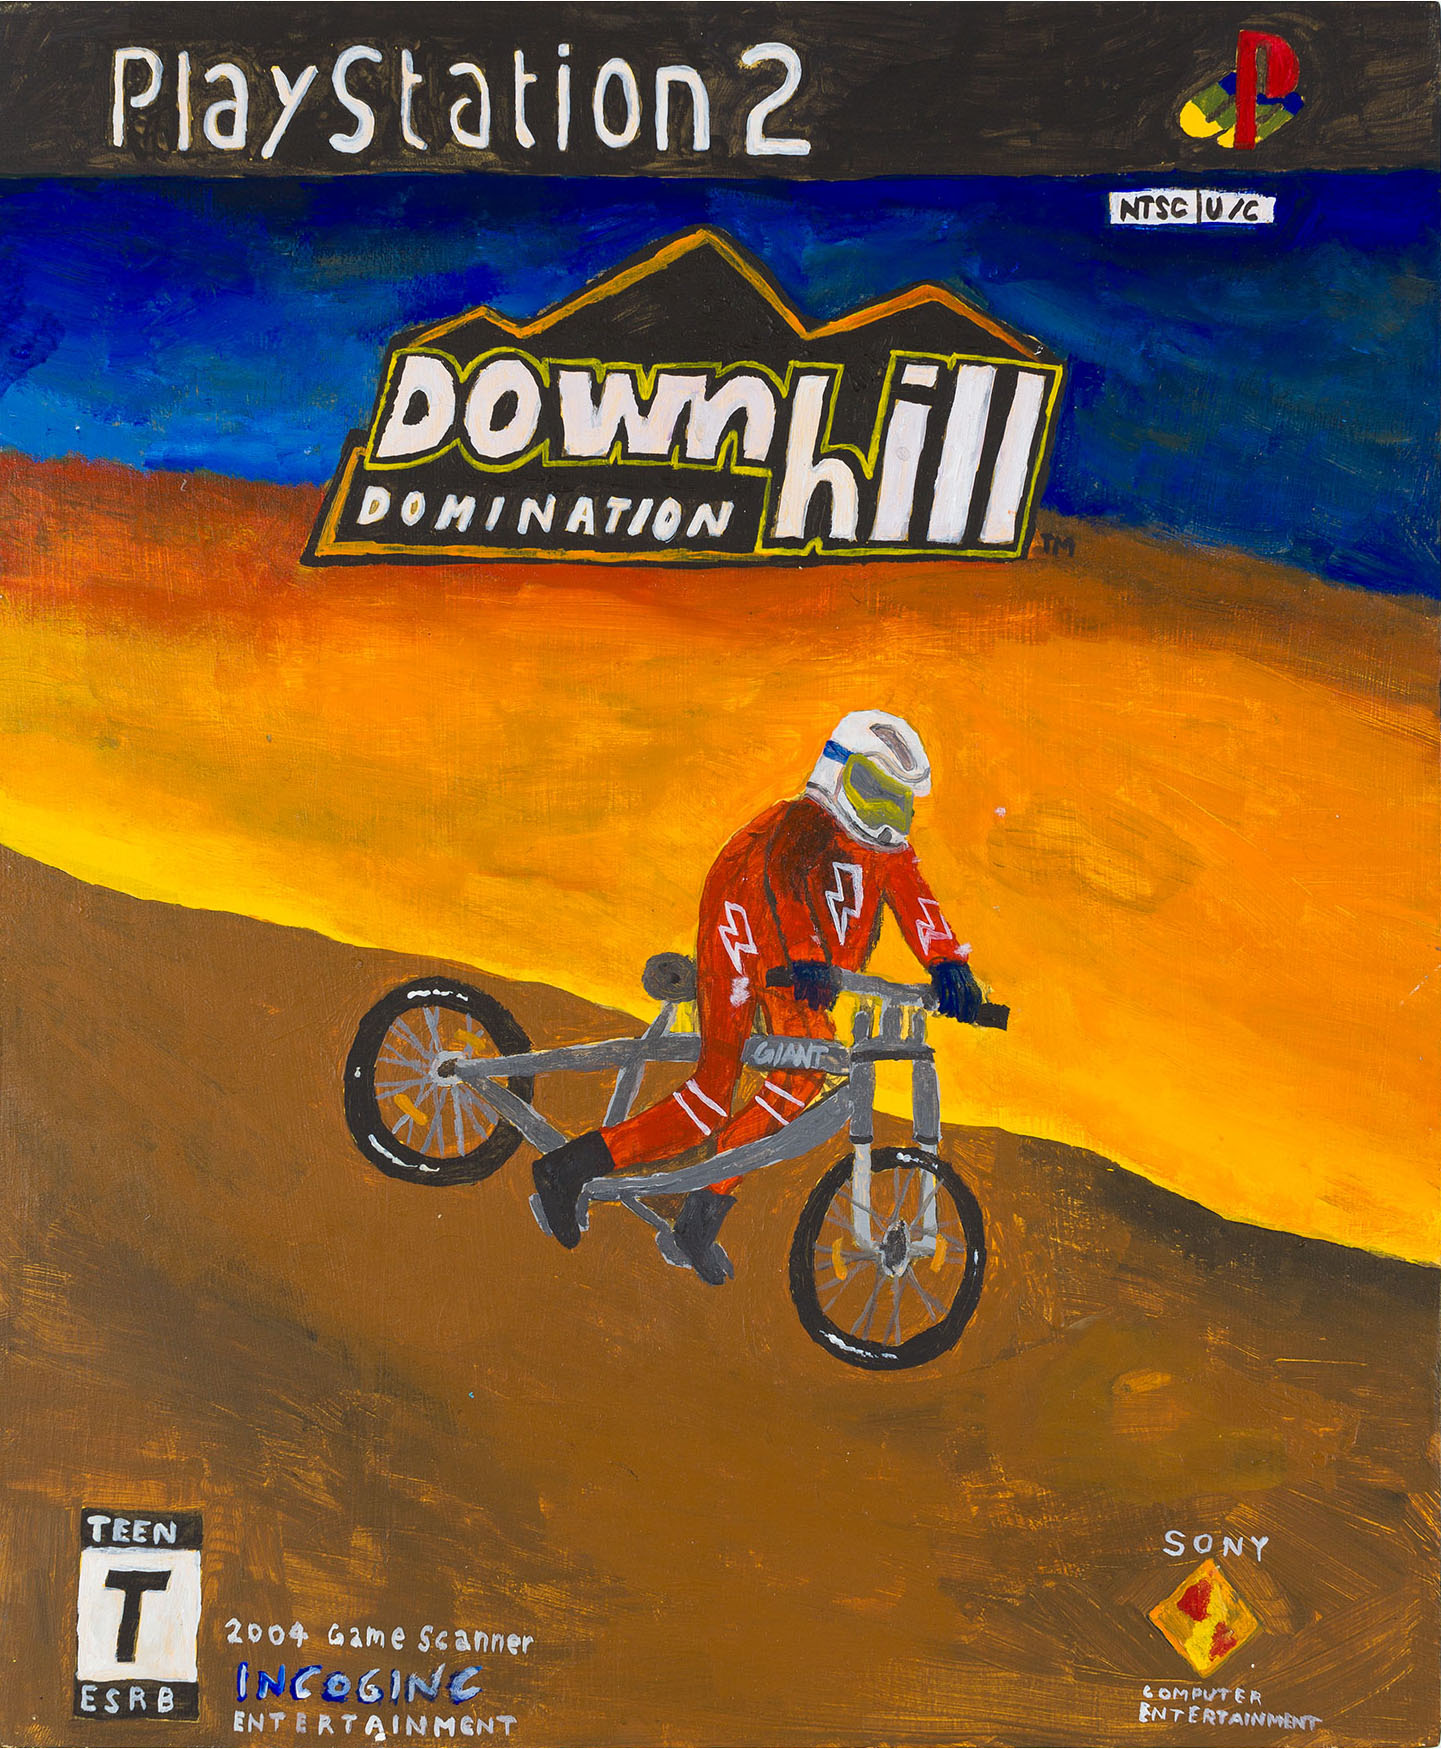 Down Hill Domination